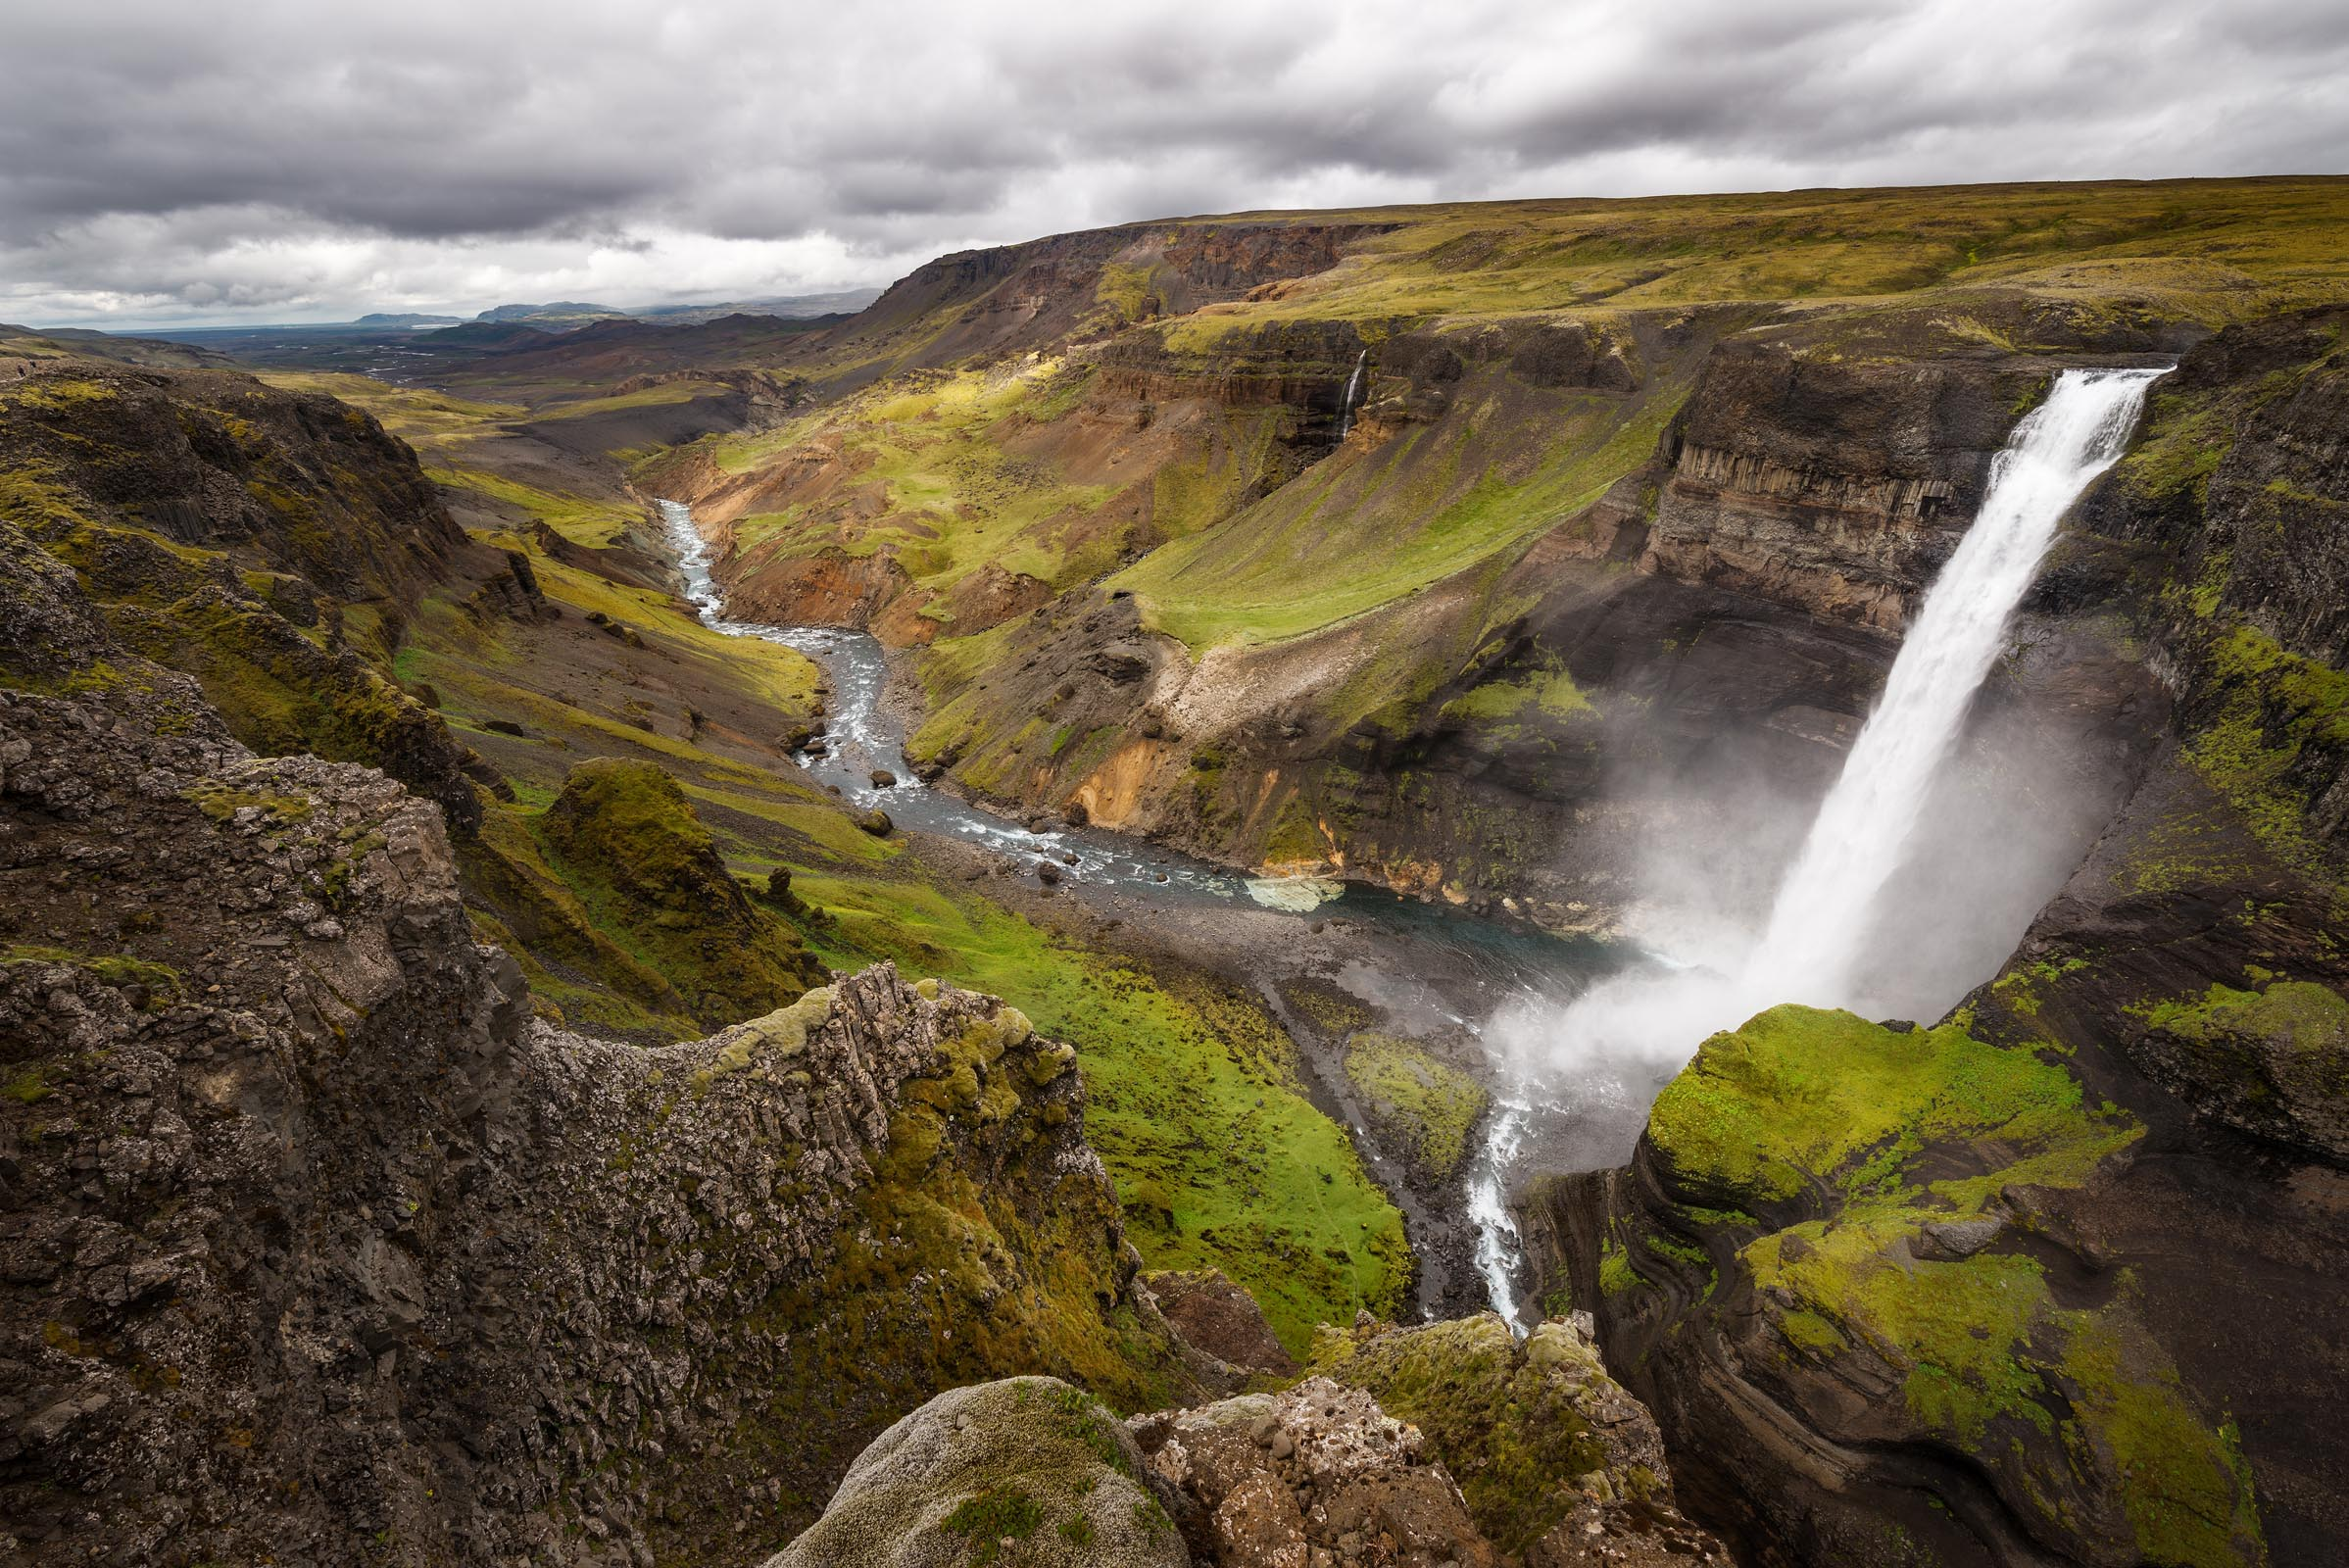 Photograph of Haifoss Waterfall in Highlands, Iceland by Brent Goldman Photography